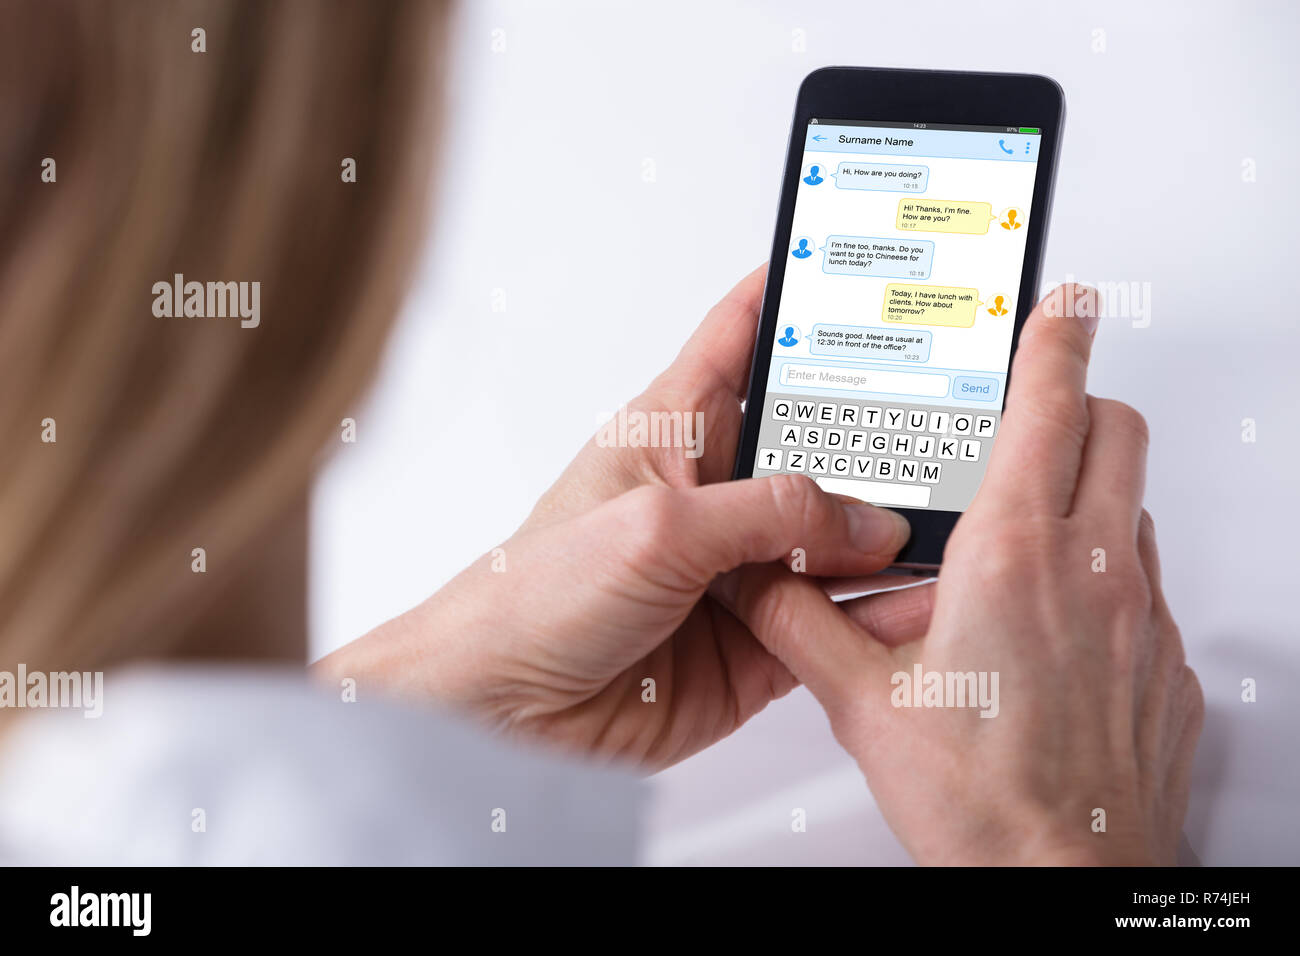 Person Sending Text Message From Smartphone Stock Photo